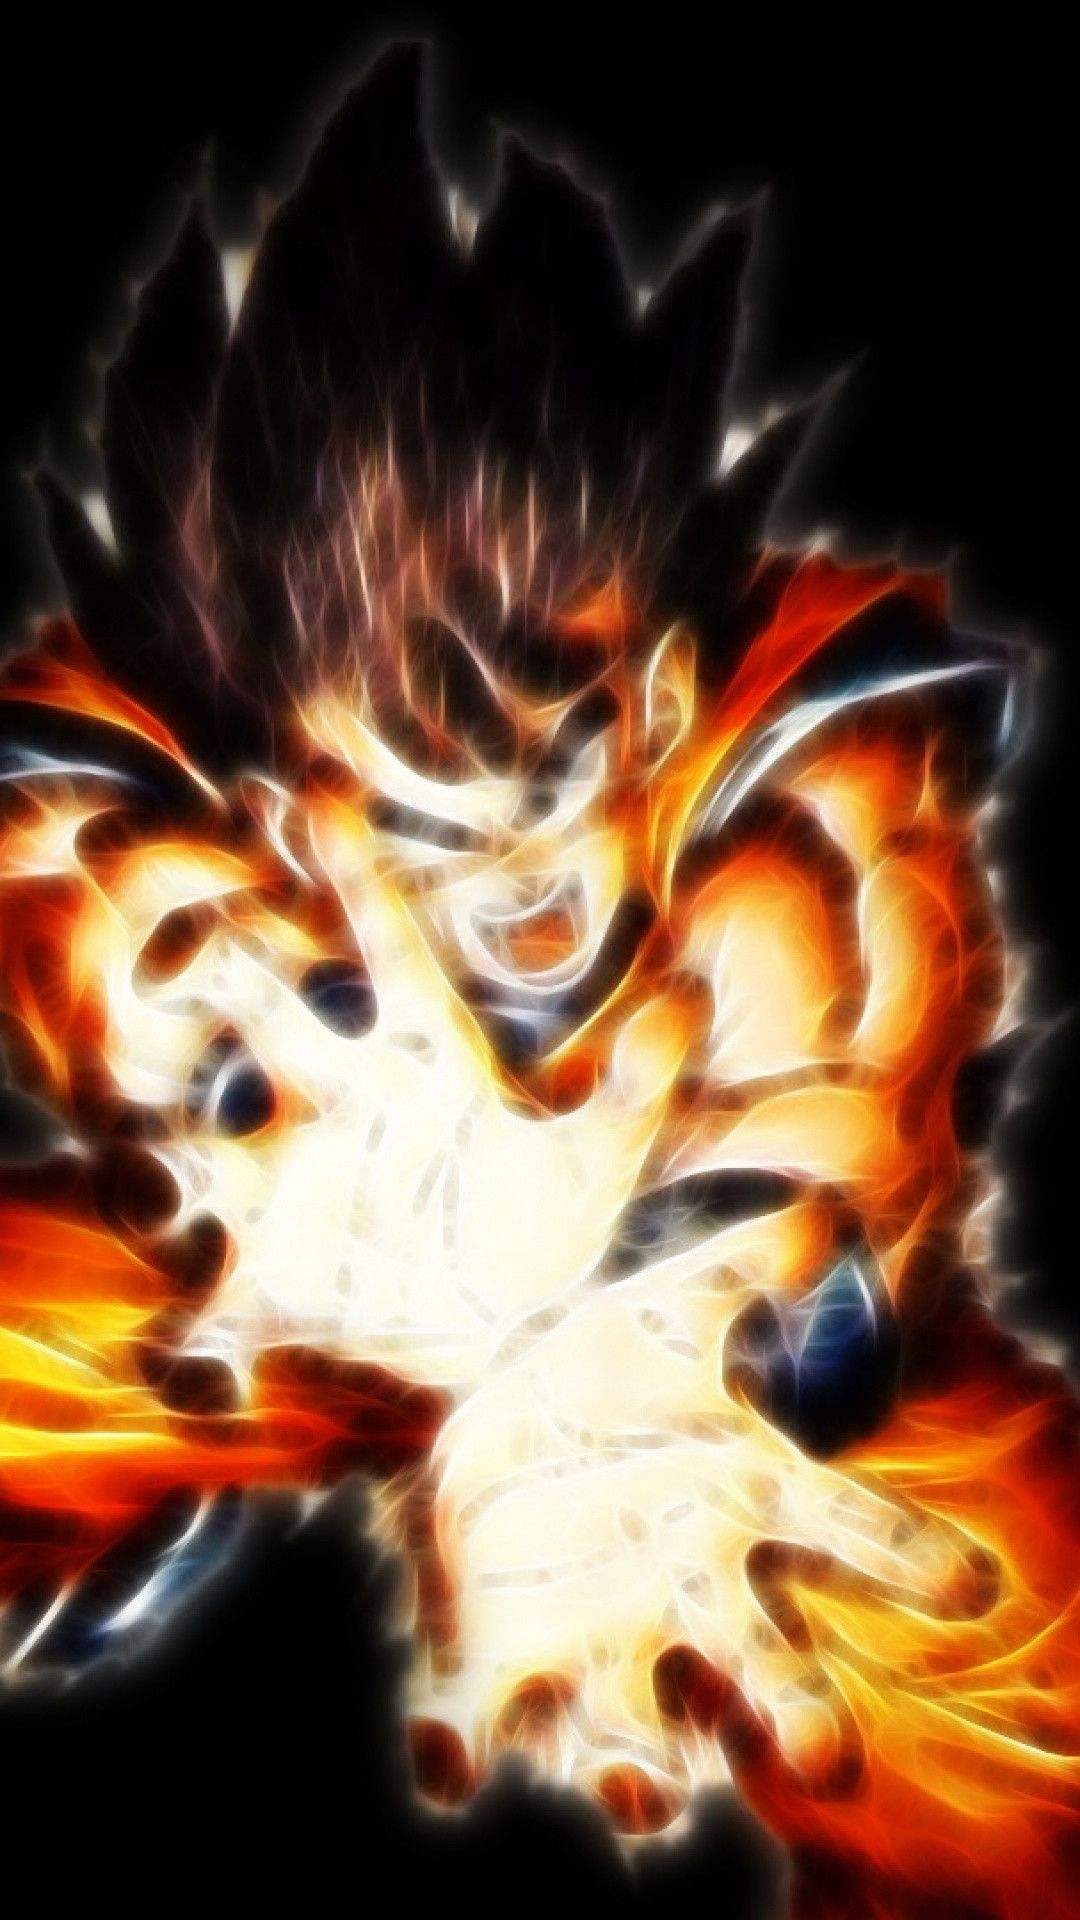 Dragon Ball Z Phone Wallpapers Top Free Dragon Ball Z Phone Backgrounds Wallpaperaccess